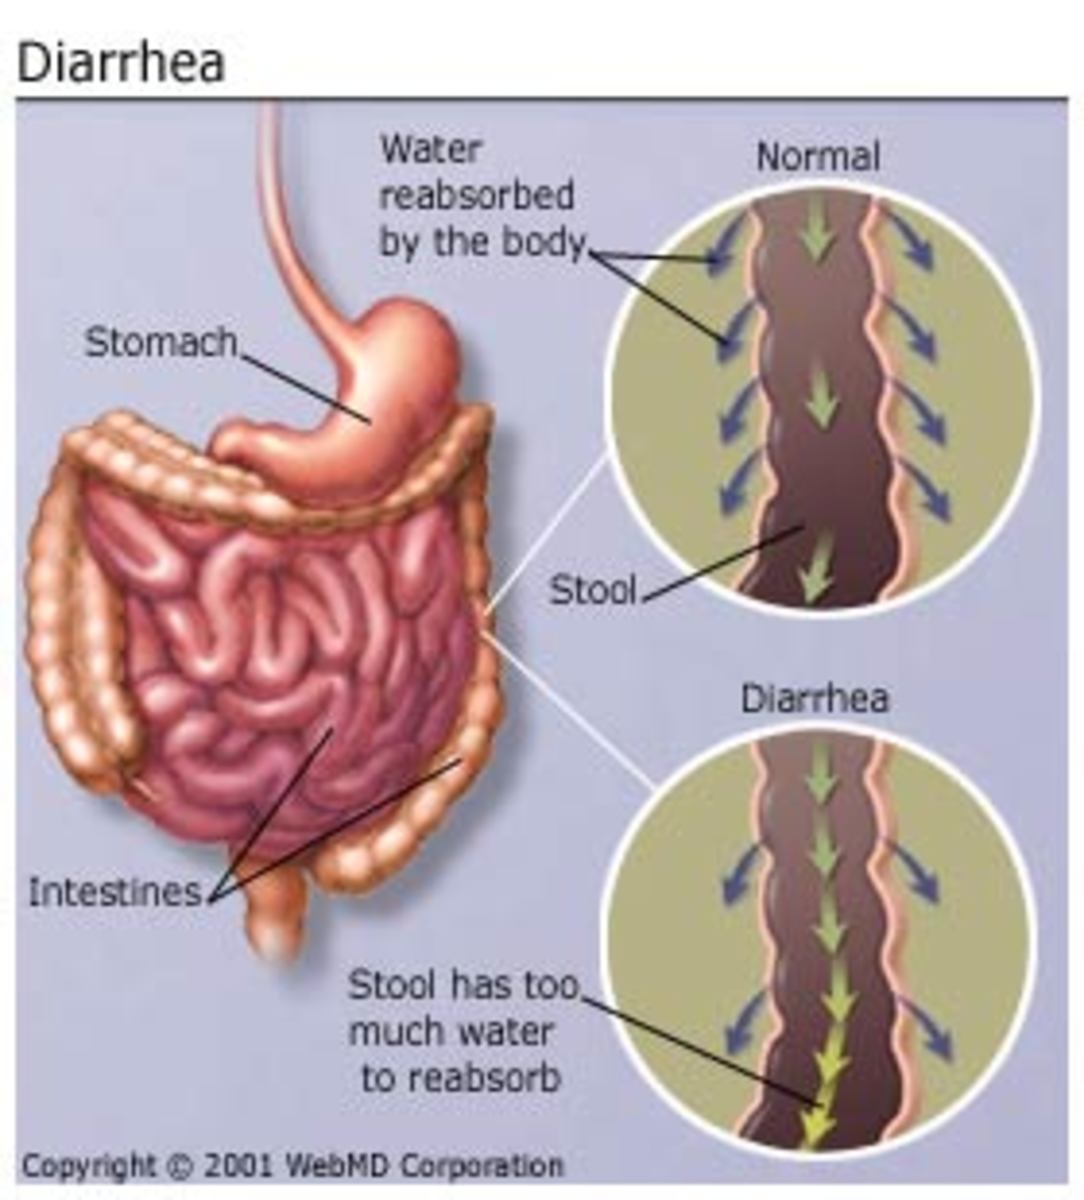 Foods to avoid while having diarrhea